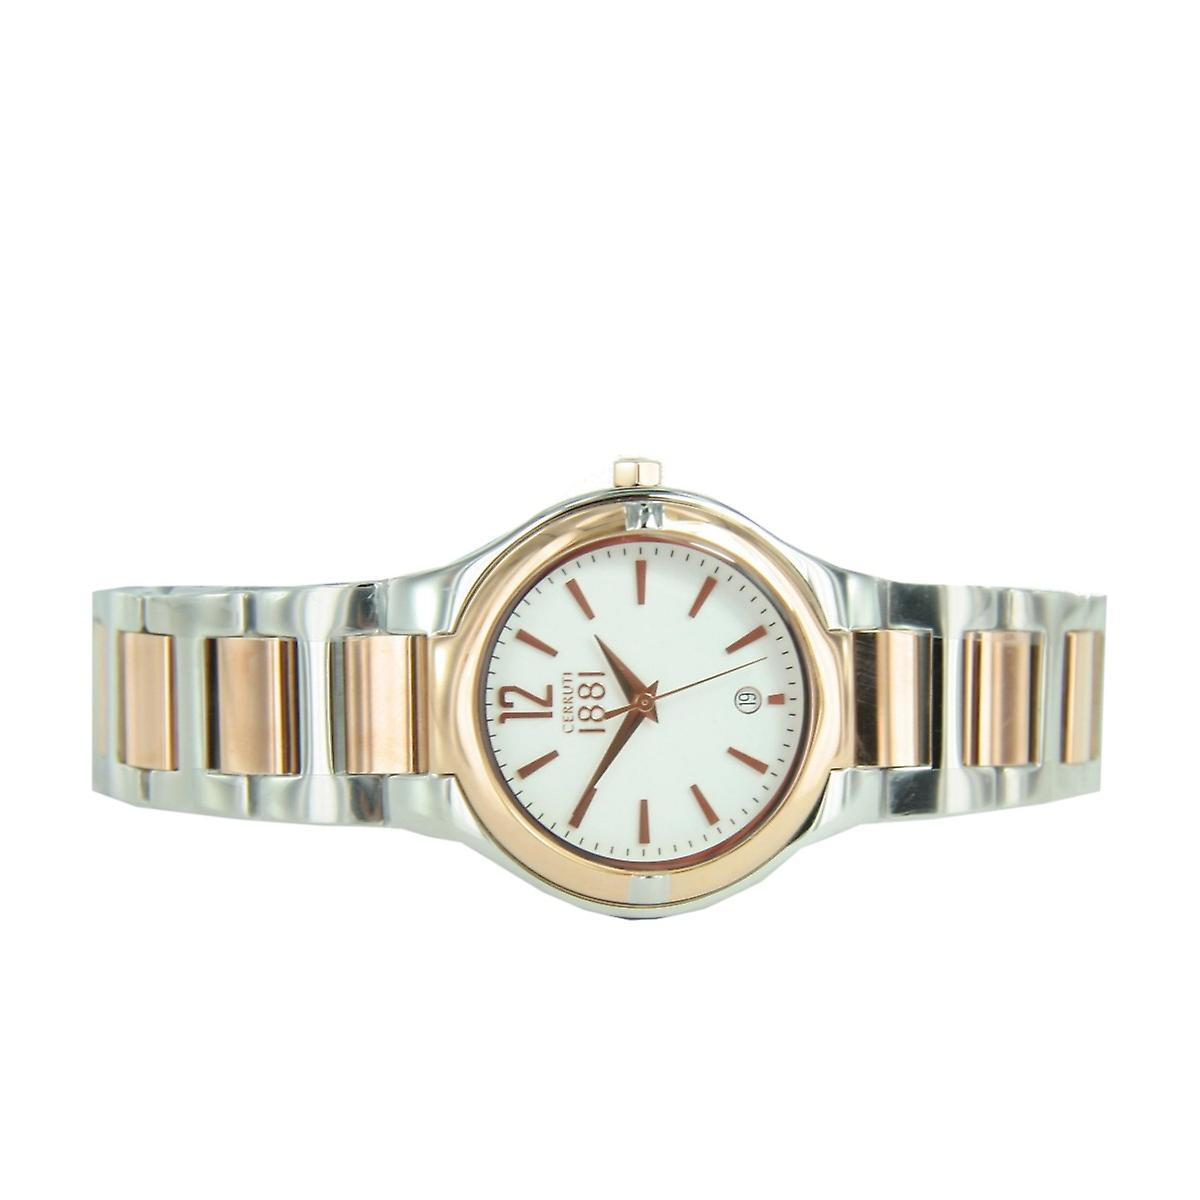 Cerruti 1881 ladies watch CRM106STR01MRT